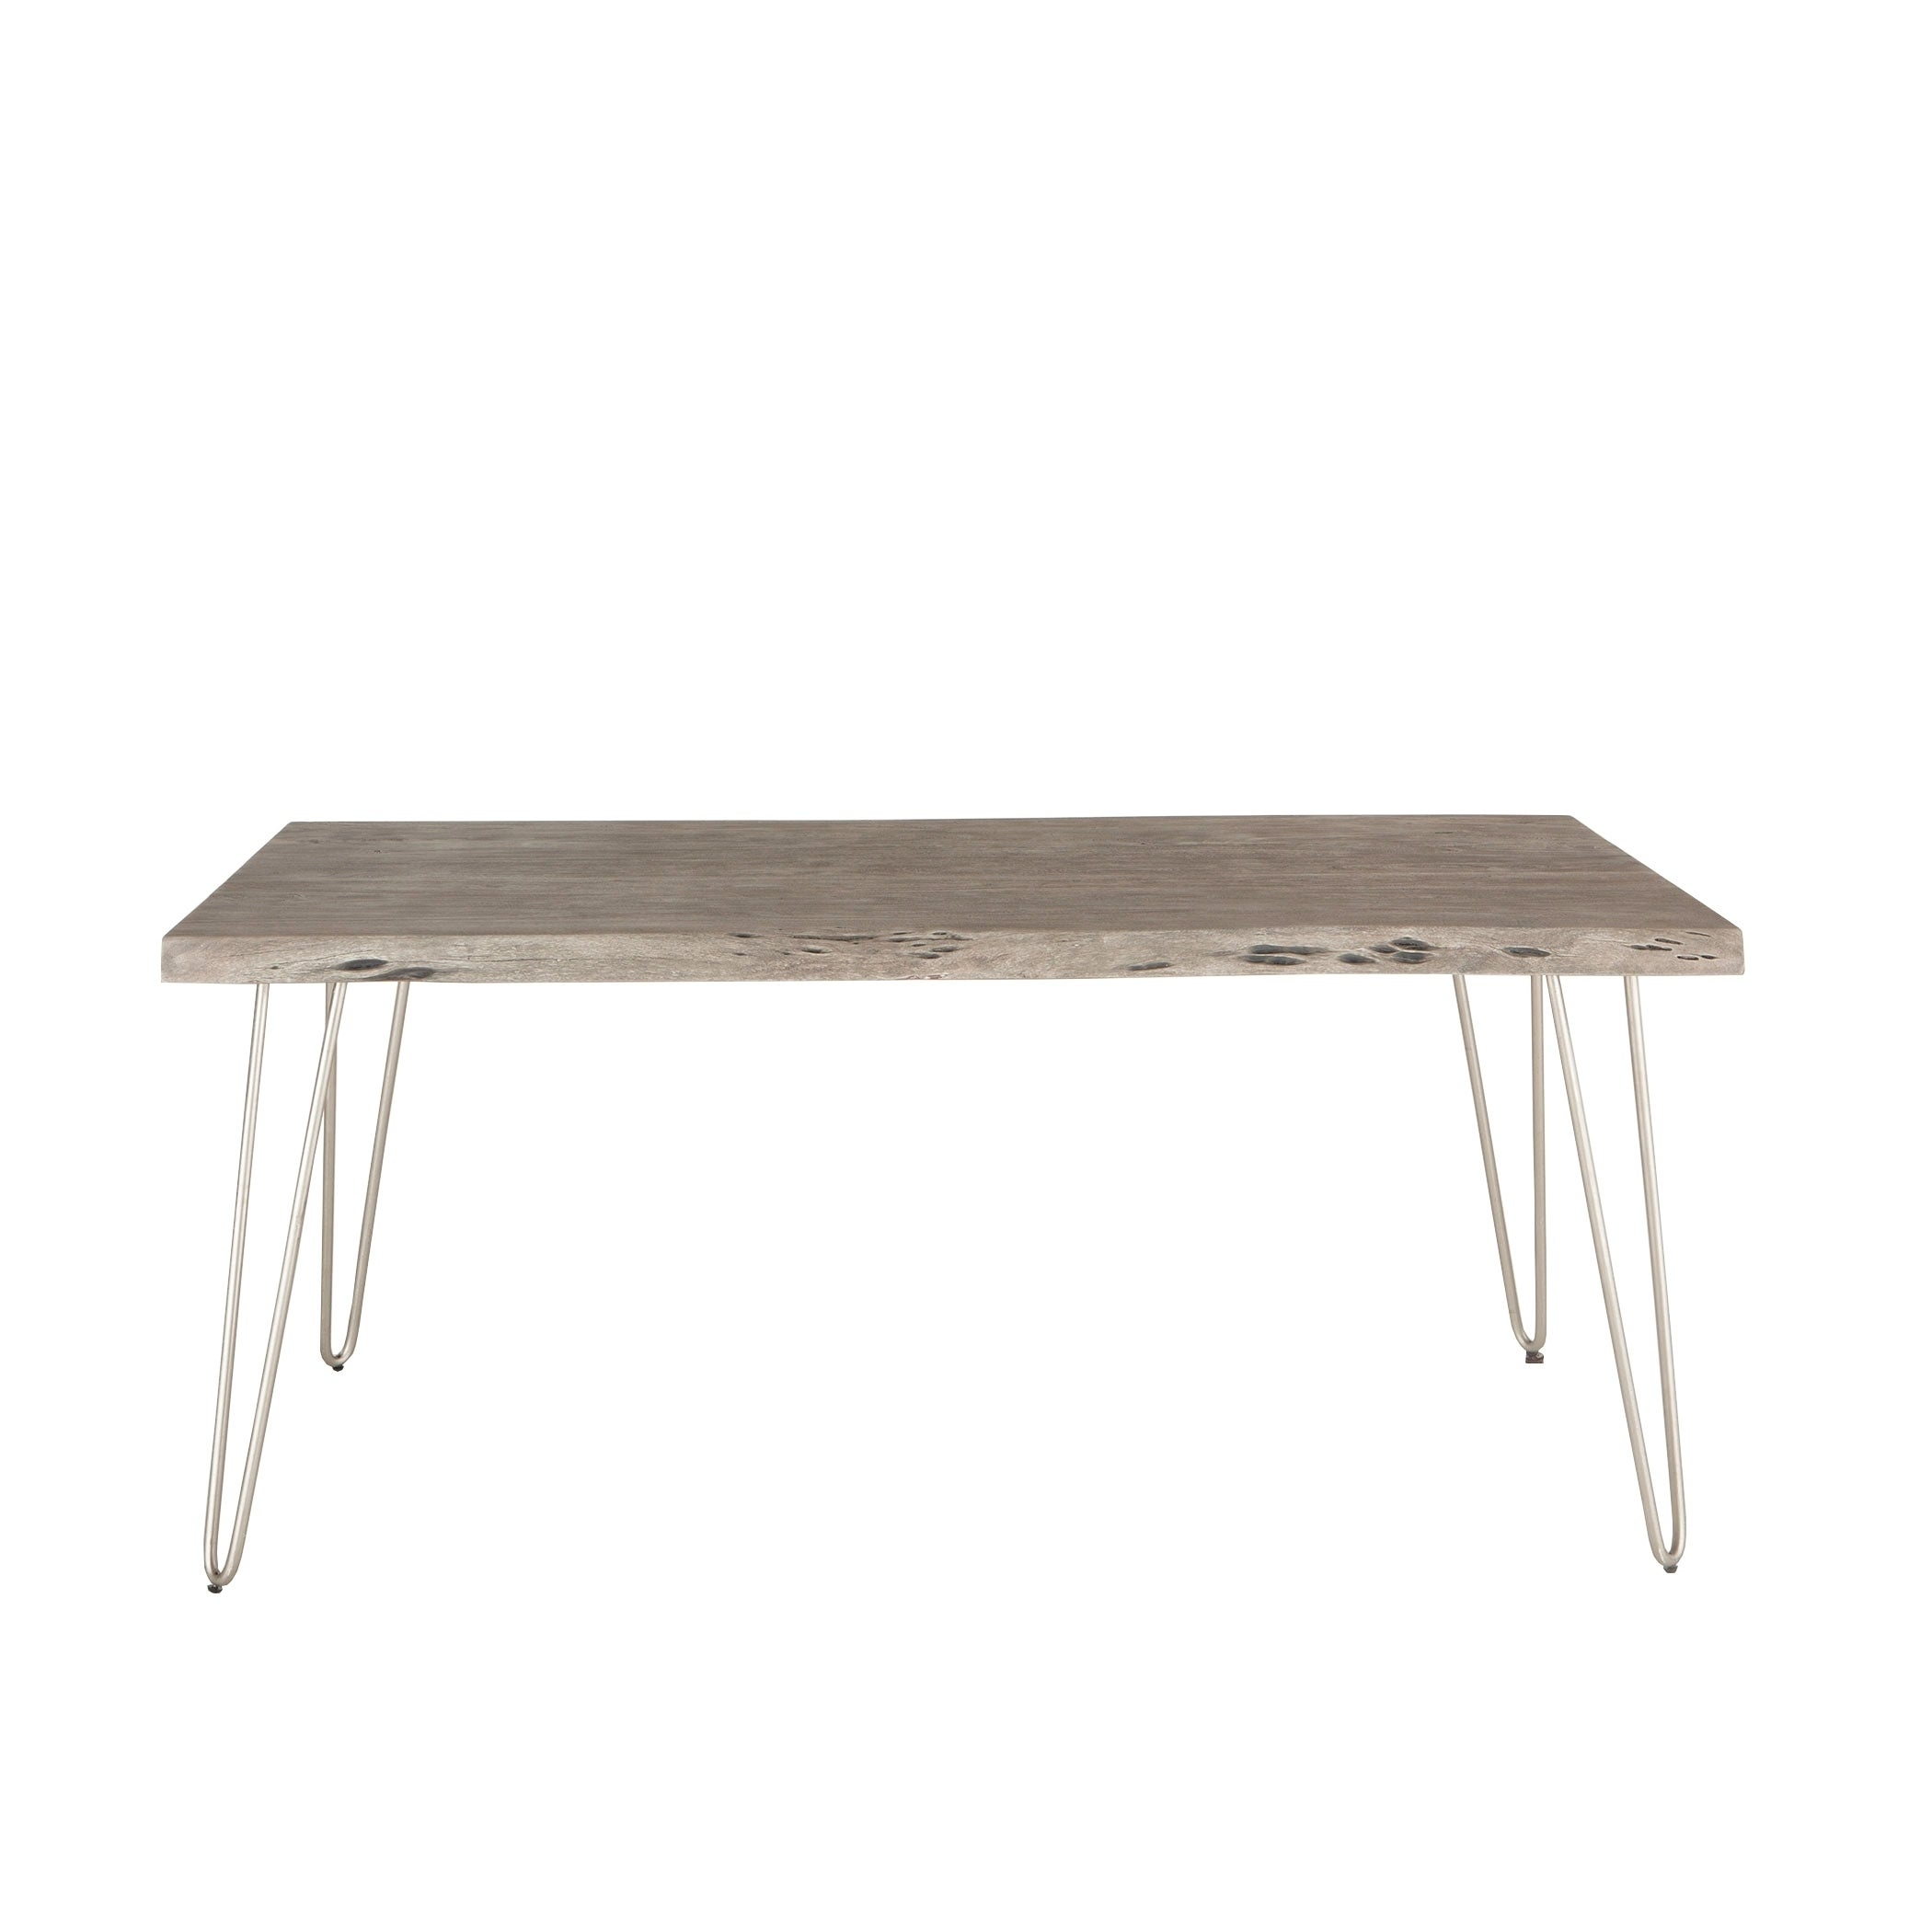 Shop weathered grey acacia wood dining table by world interiors on sale ships to canada overstock ca 17478371